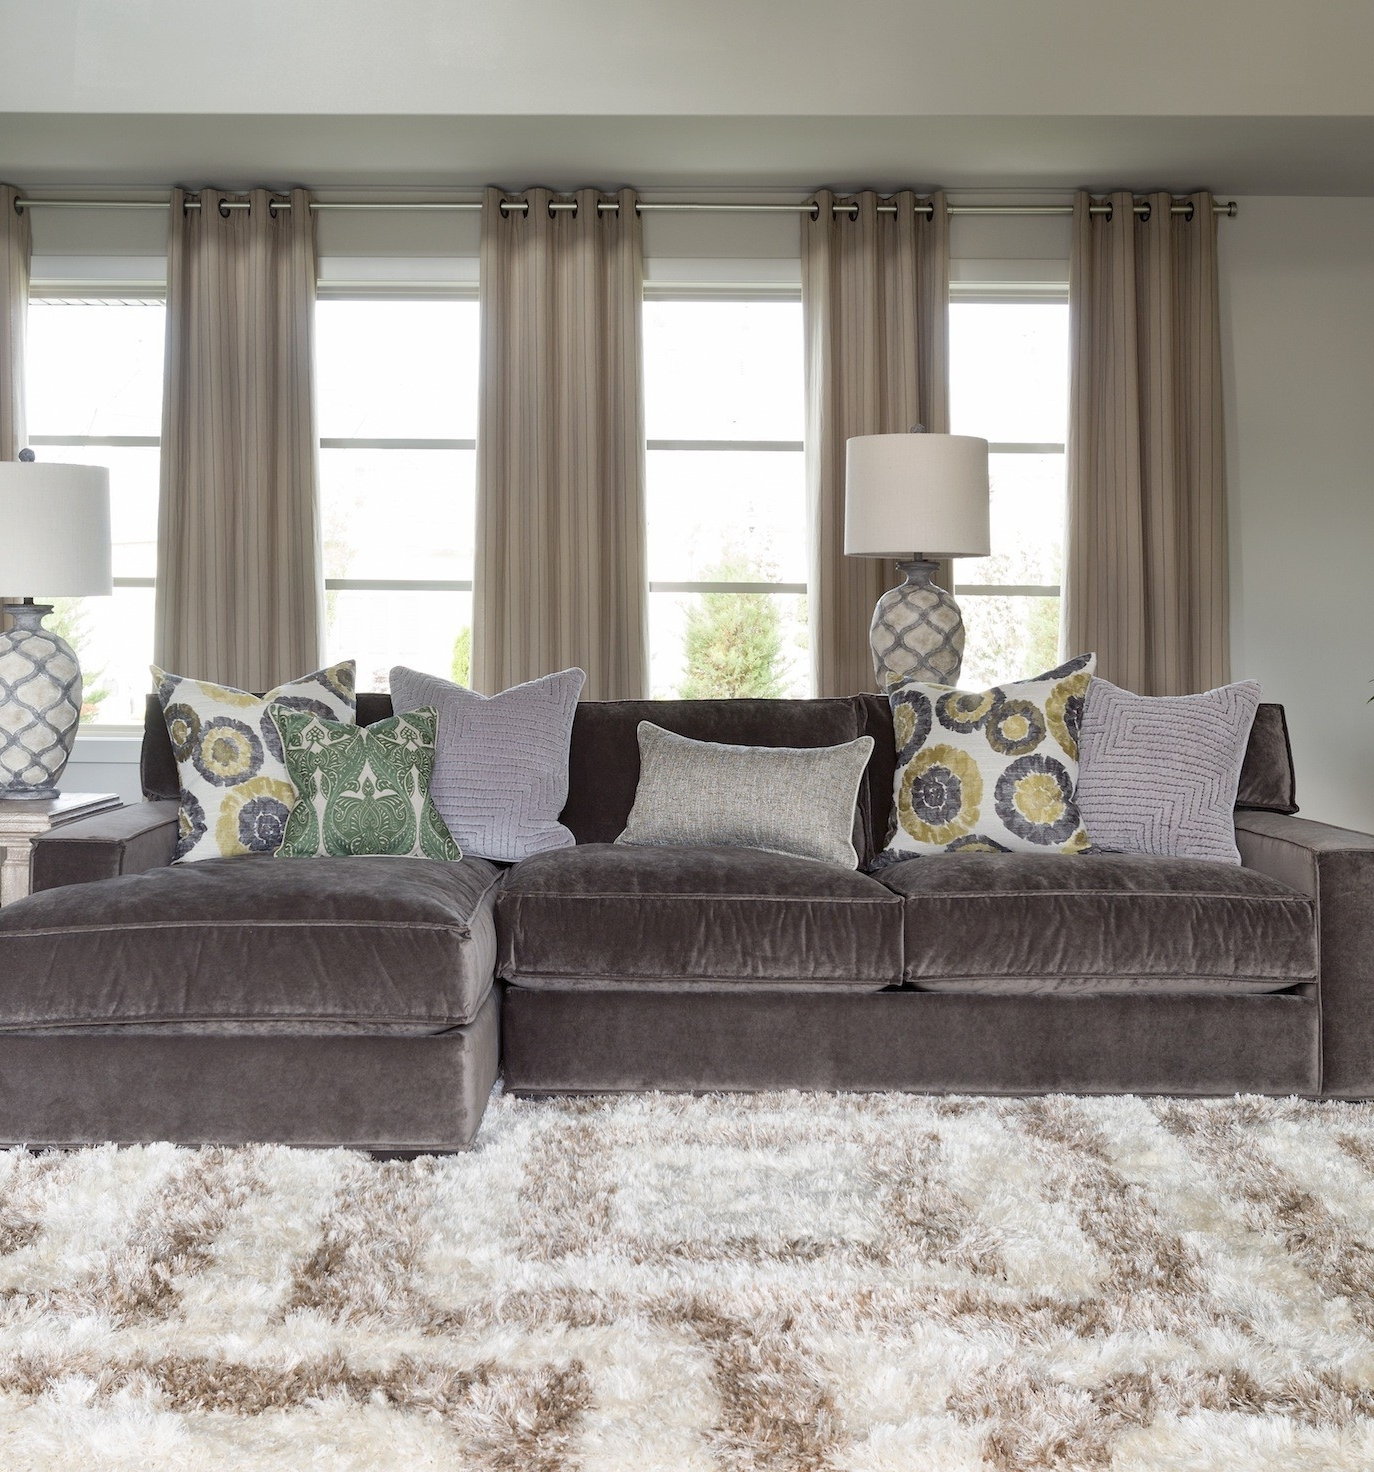 Most Recent Velvet Sectional Sofas With Regard To Interior: Gray Couches Living Room Be Equipped With Gray Velvet (View 8 of 15)